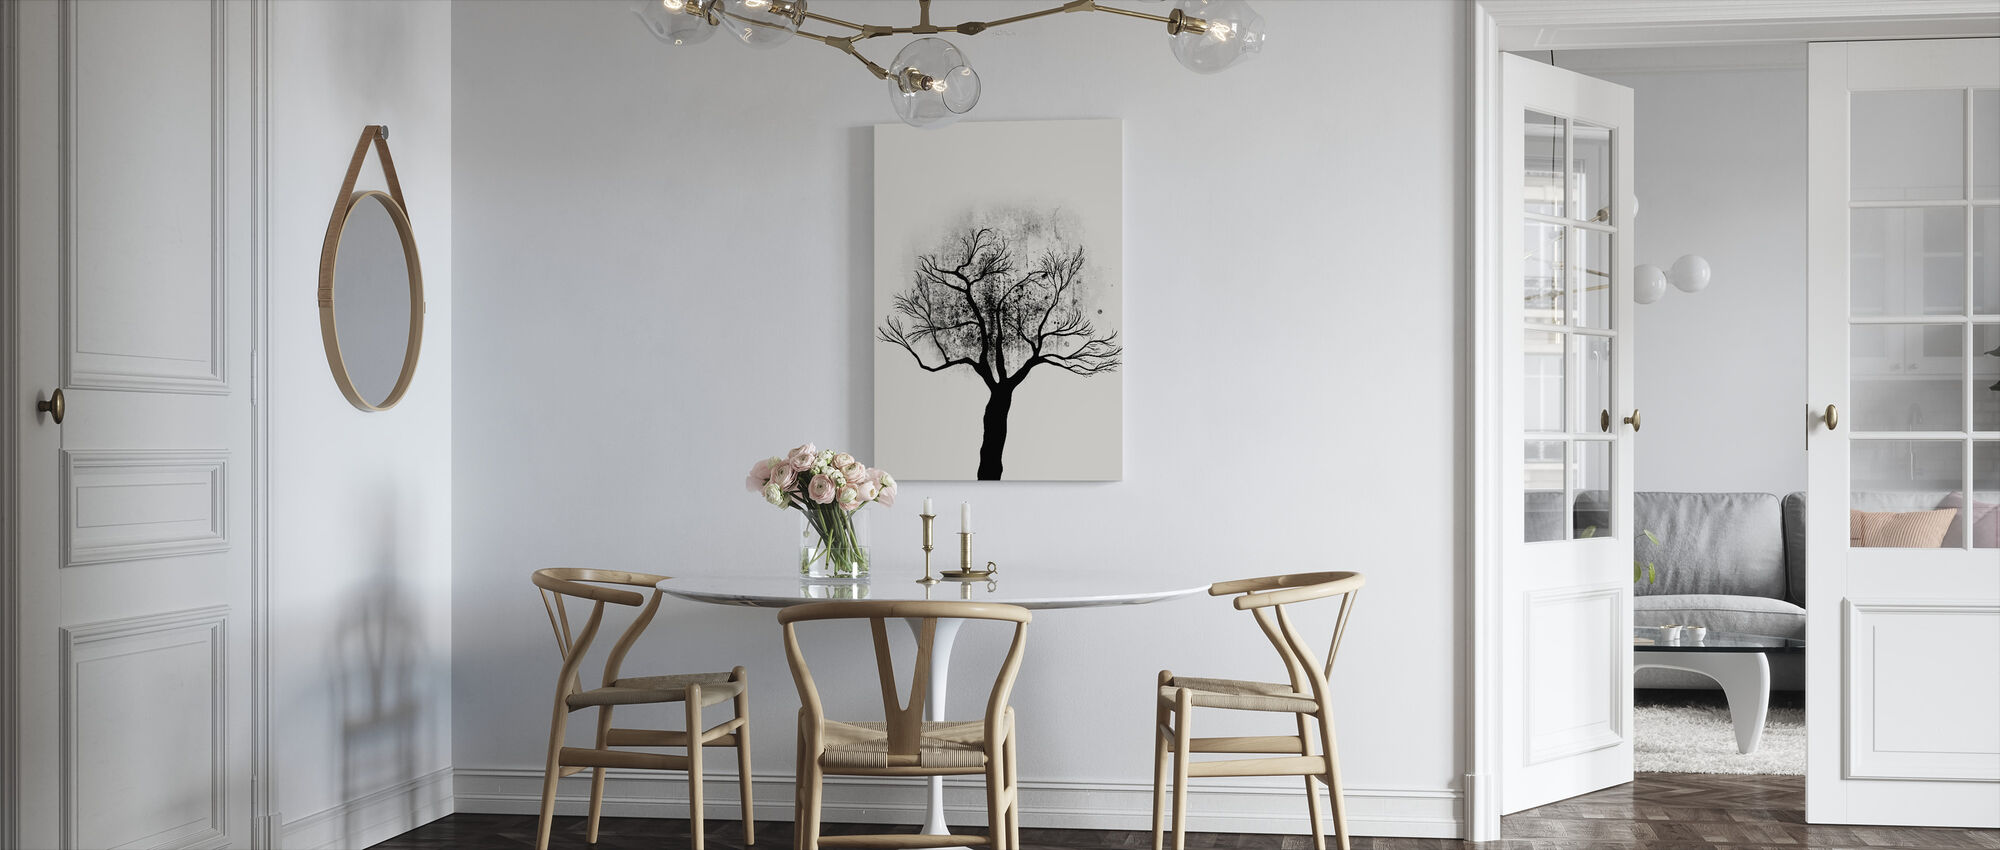 Tree Study No 5 - Canvas print - Kitchen